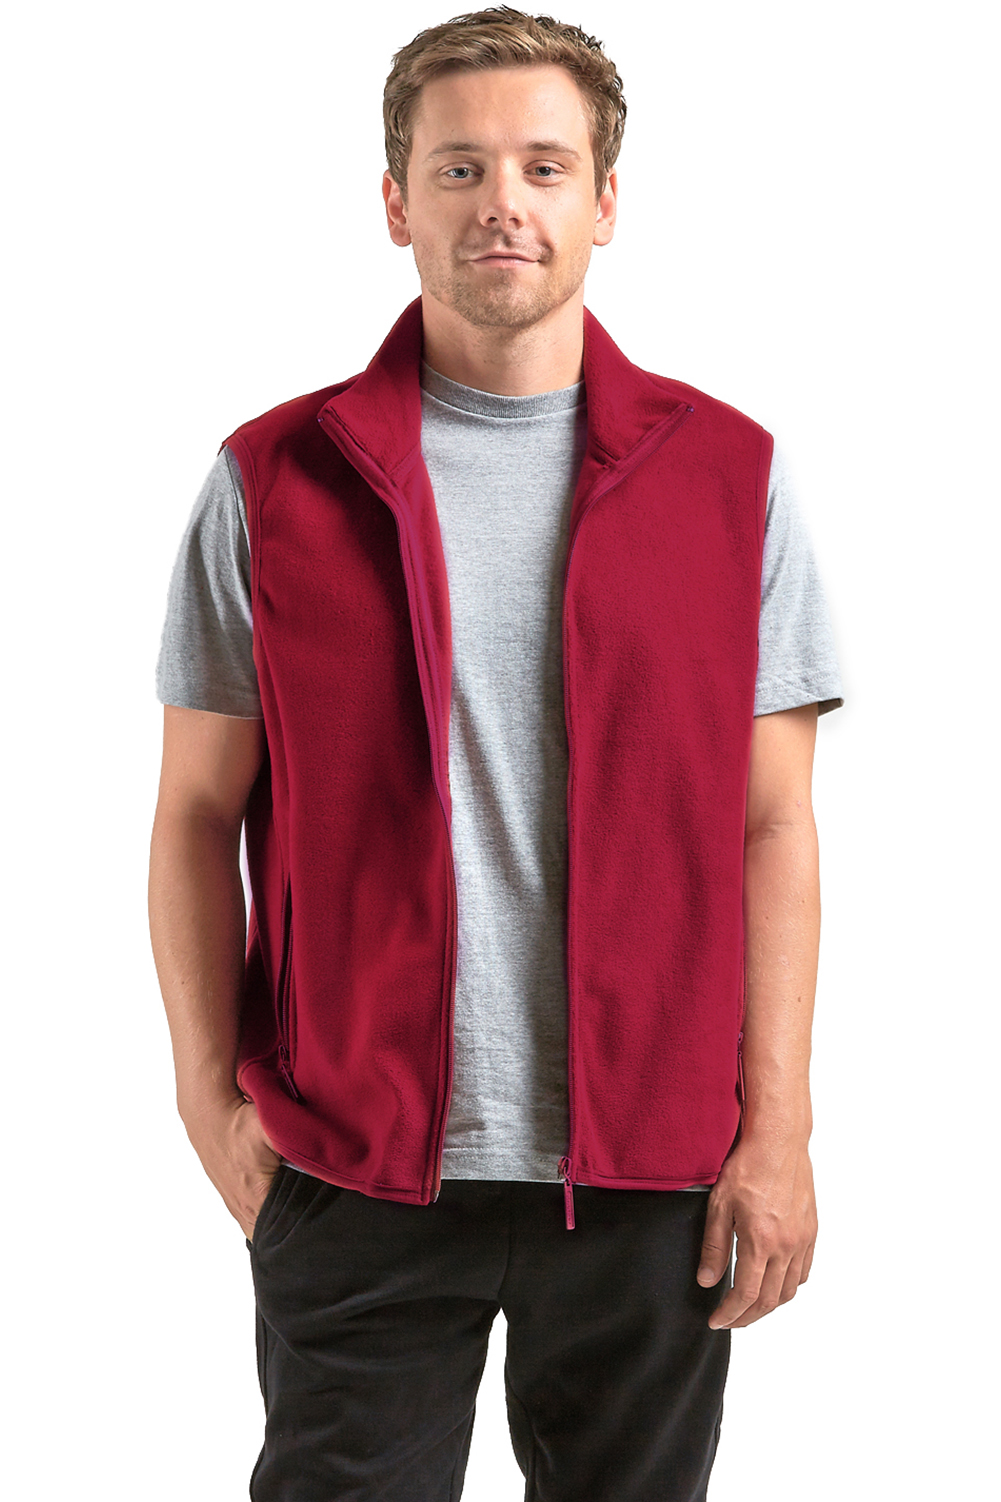 Polar Fleece Bettwäsche Men Polar Fleece Vest Zip Up Sleeveless Jacket Warm Winter